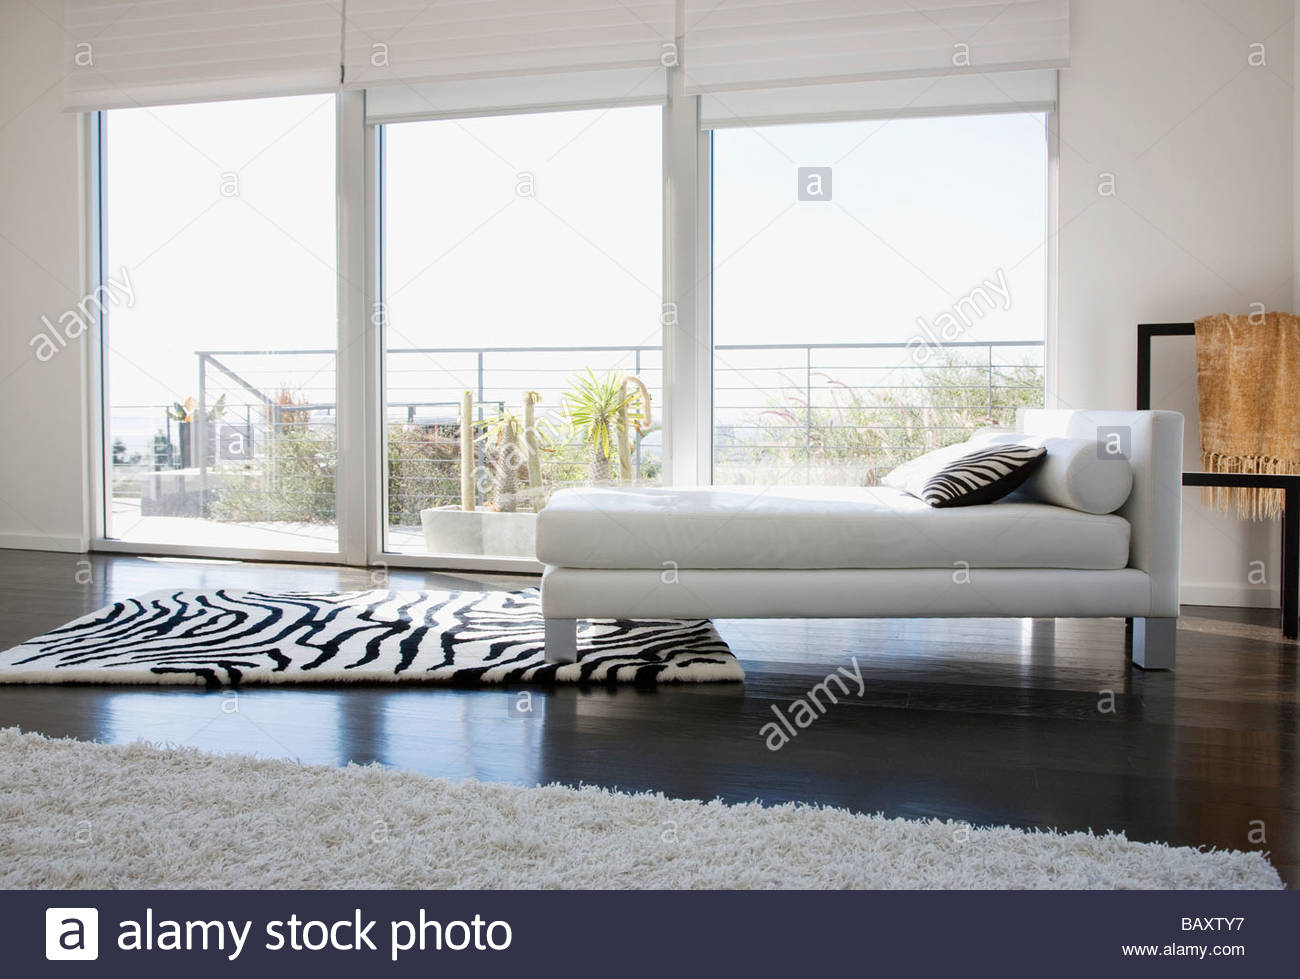 Interior of modern living room with glass walls stock image